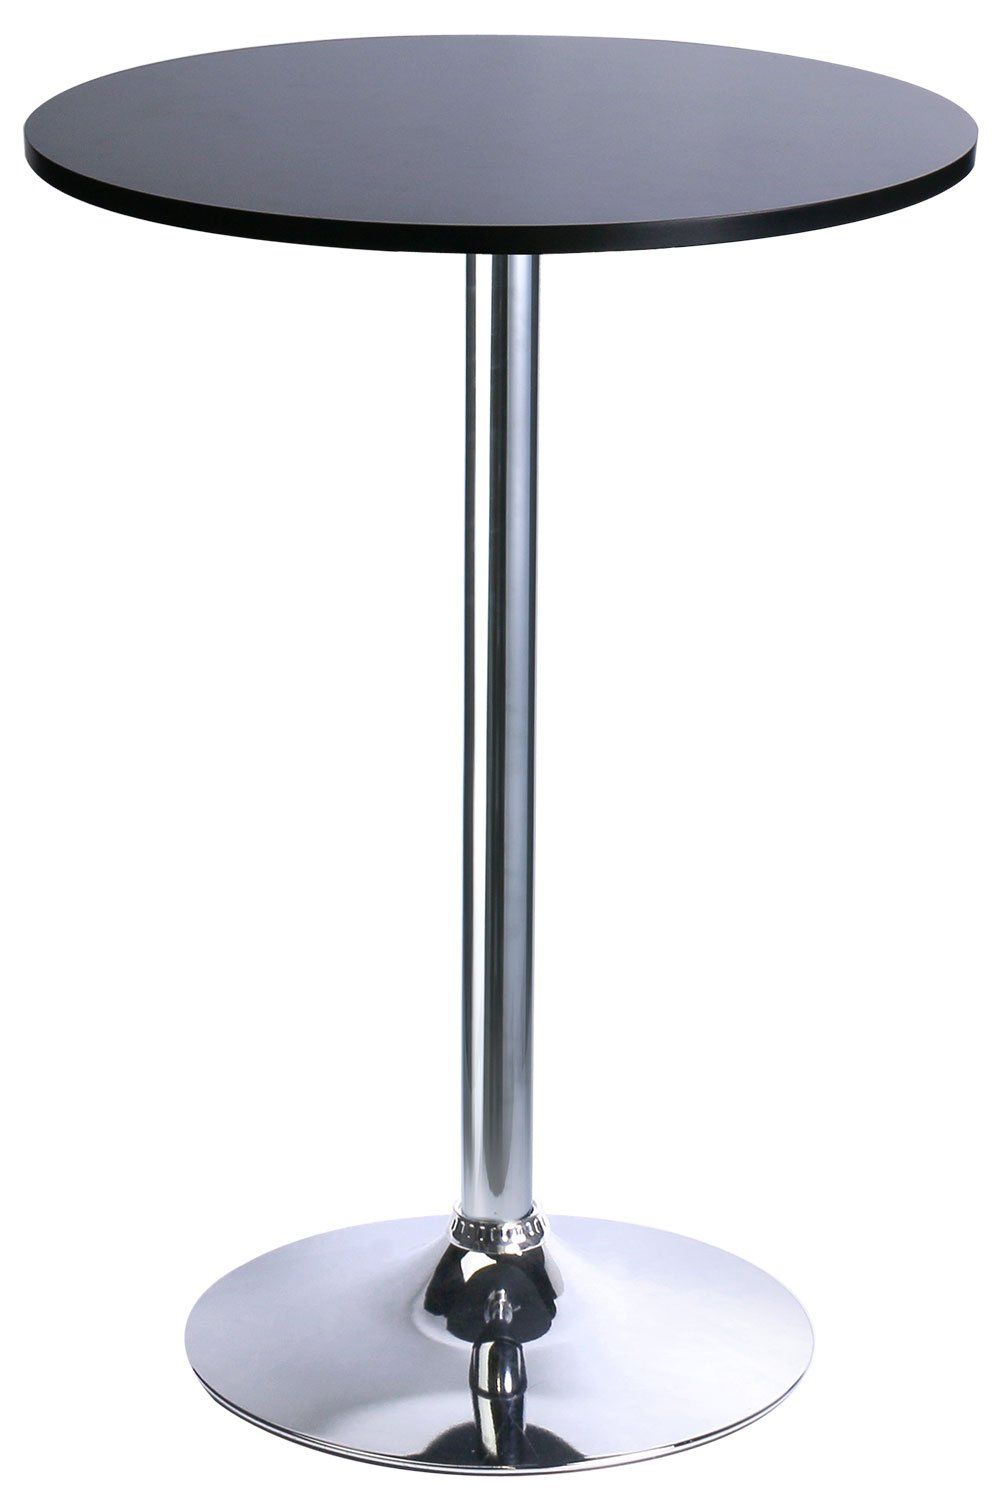 Leopard Round Top Not Adjustable(41 INCHES Height) Bar Table,Pub Table With Silver Leg and Base,Black